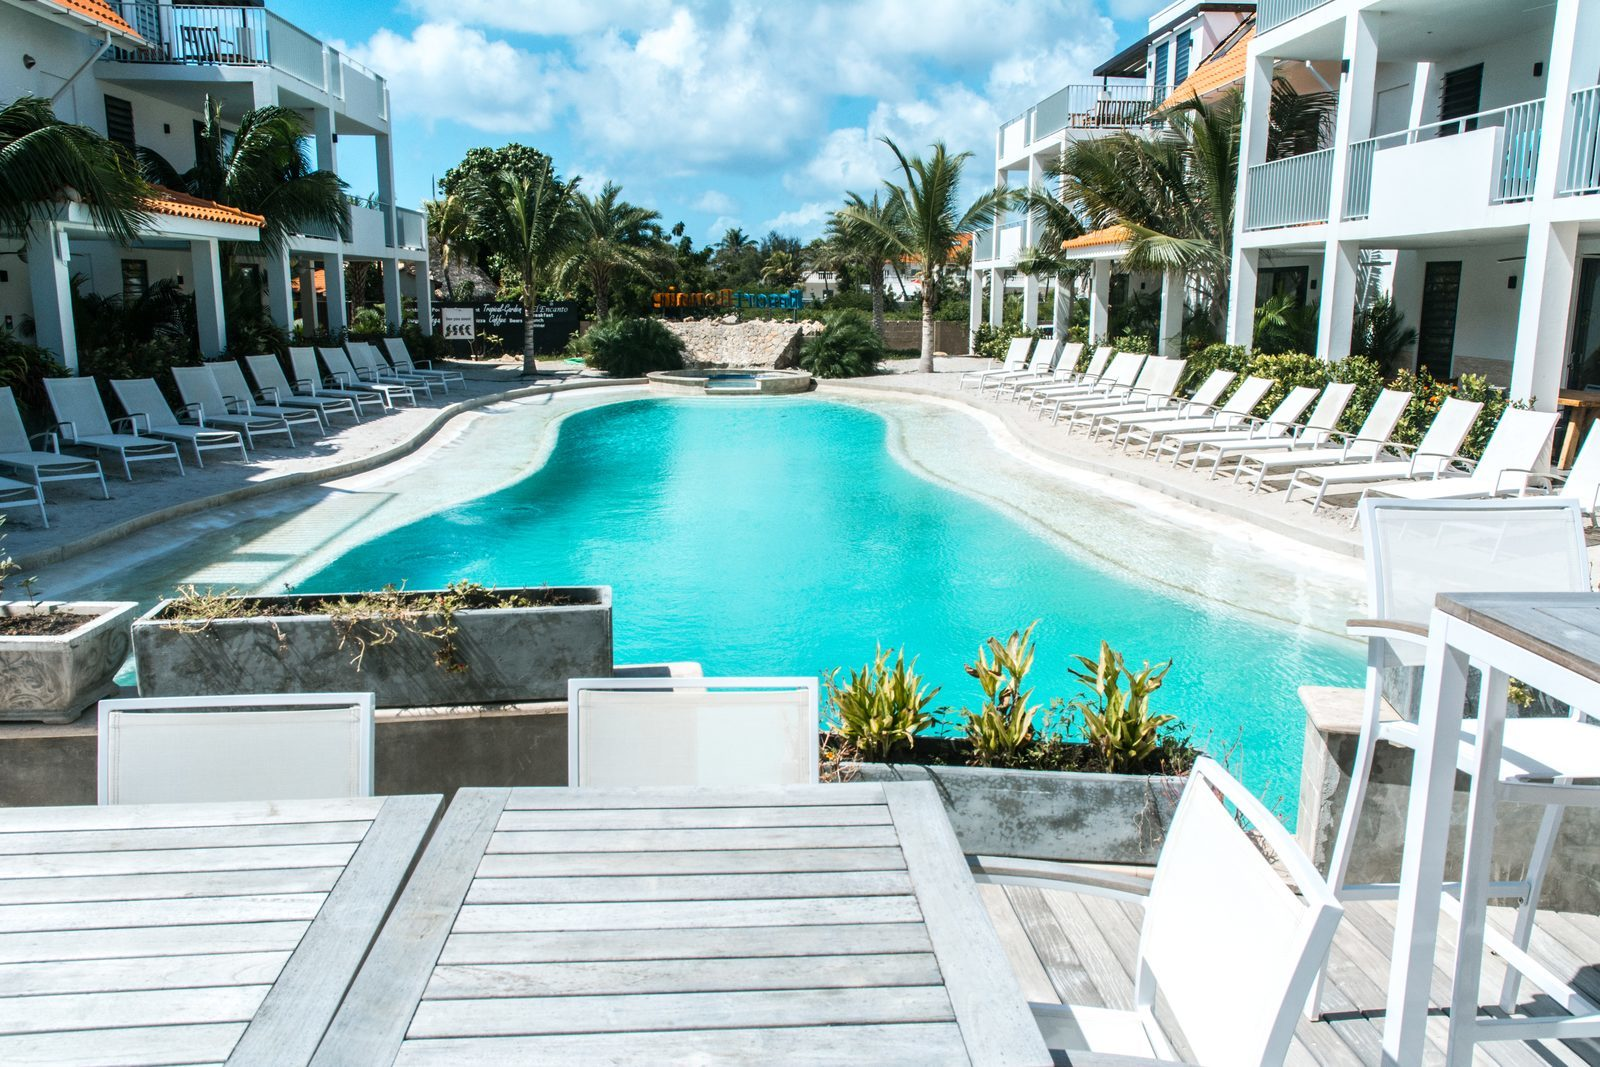 Resort Bonaire offers several terraces from which you have a view of the swimming pool.